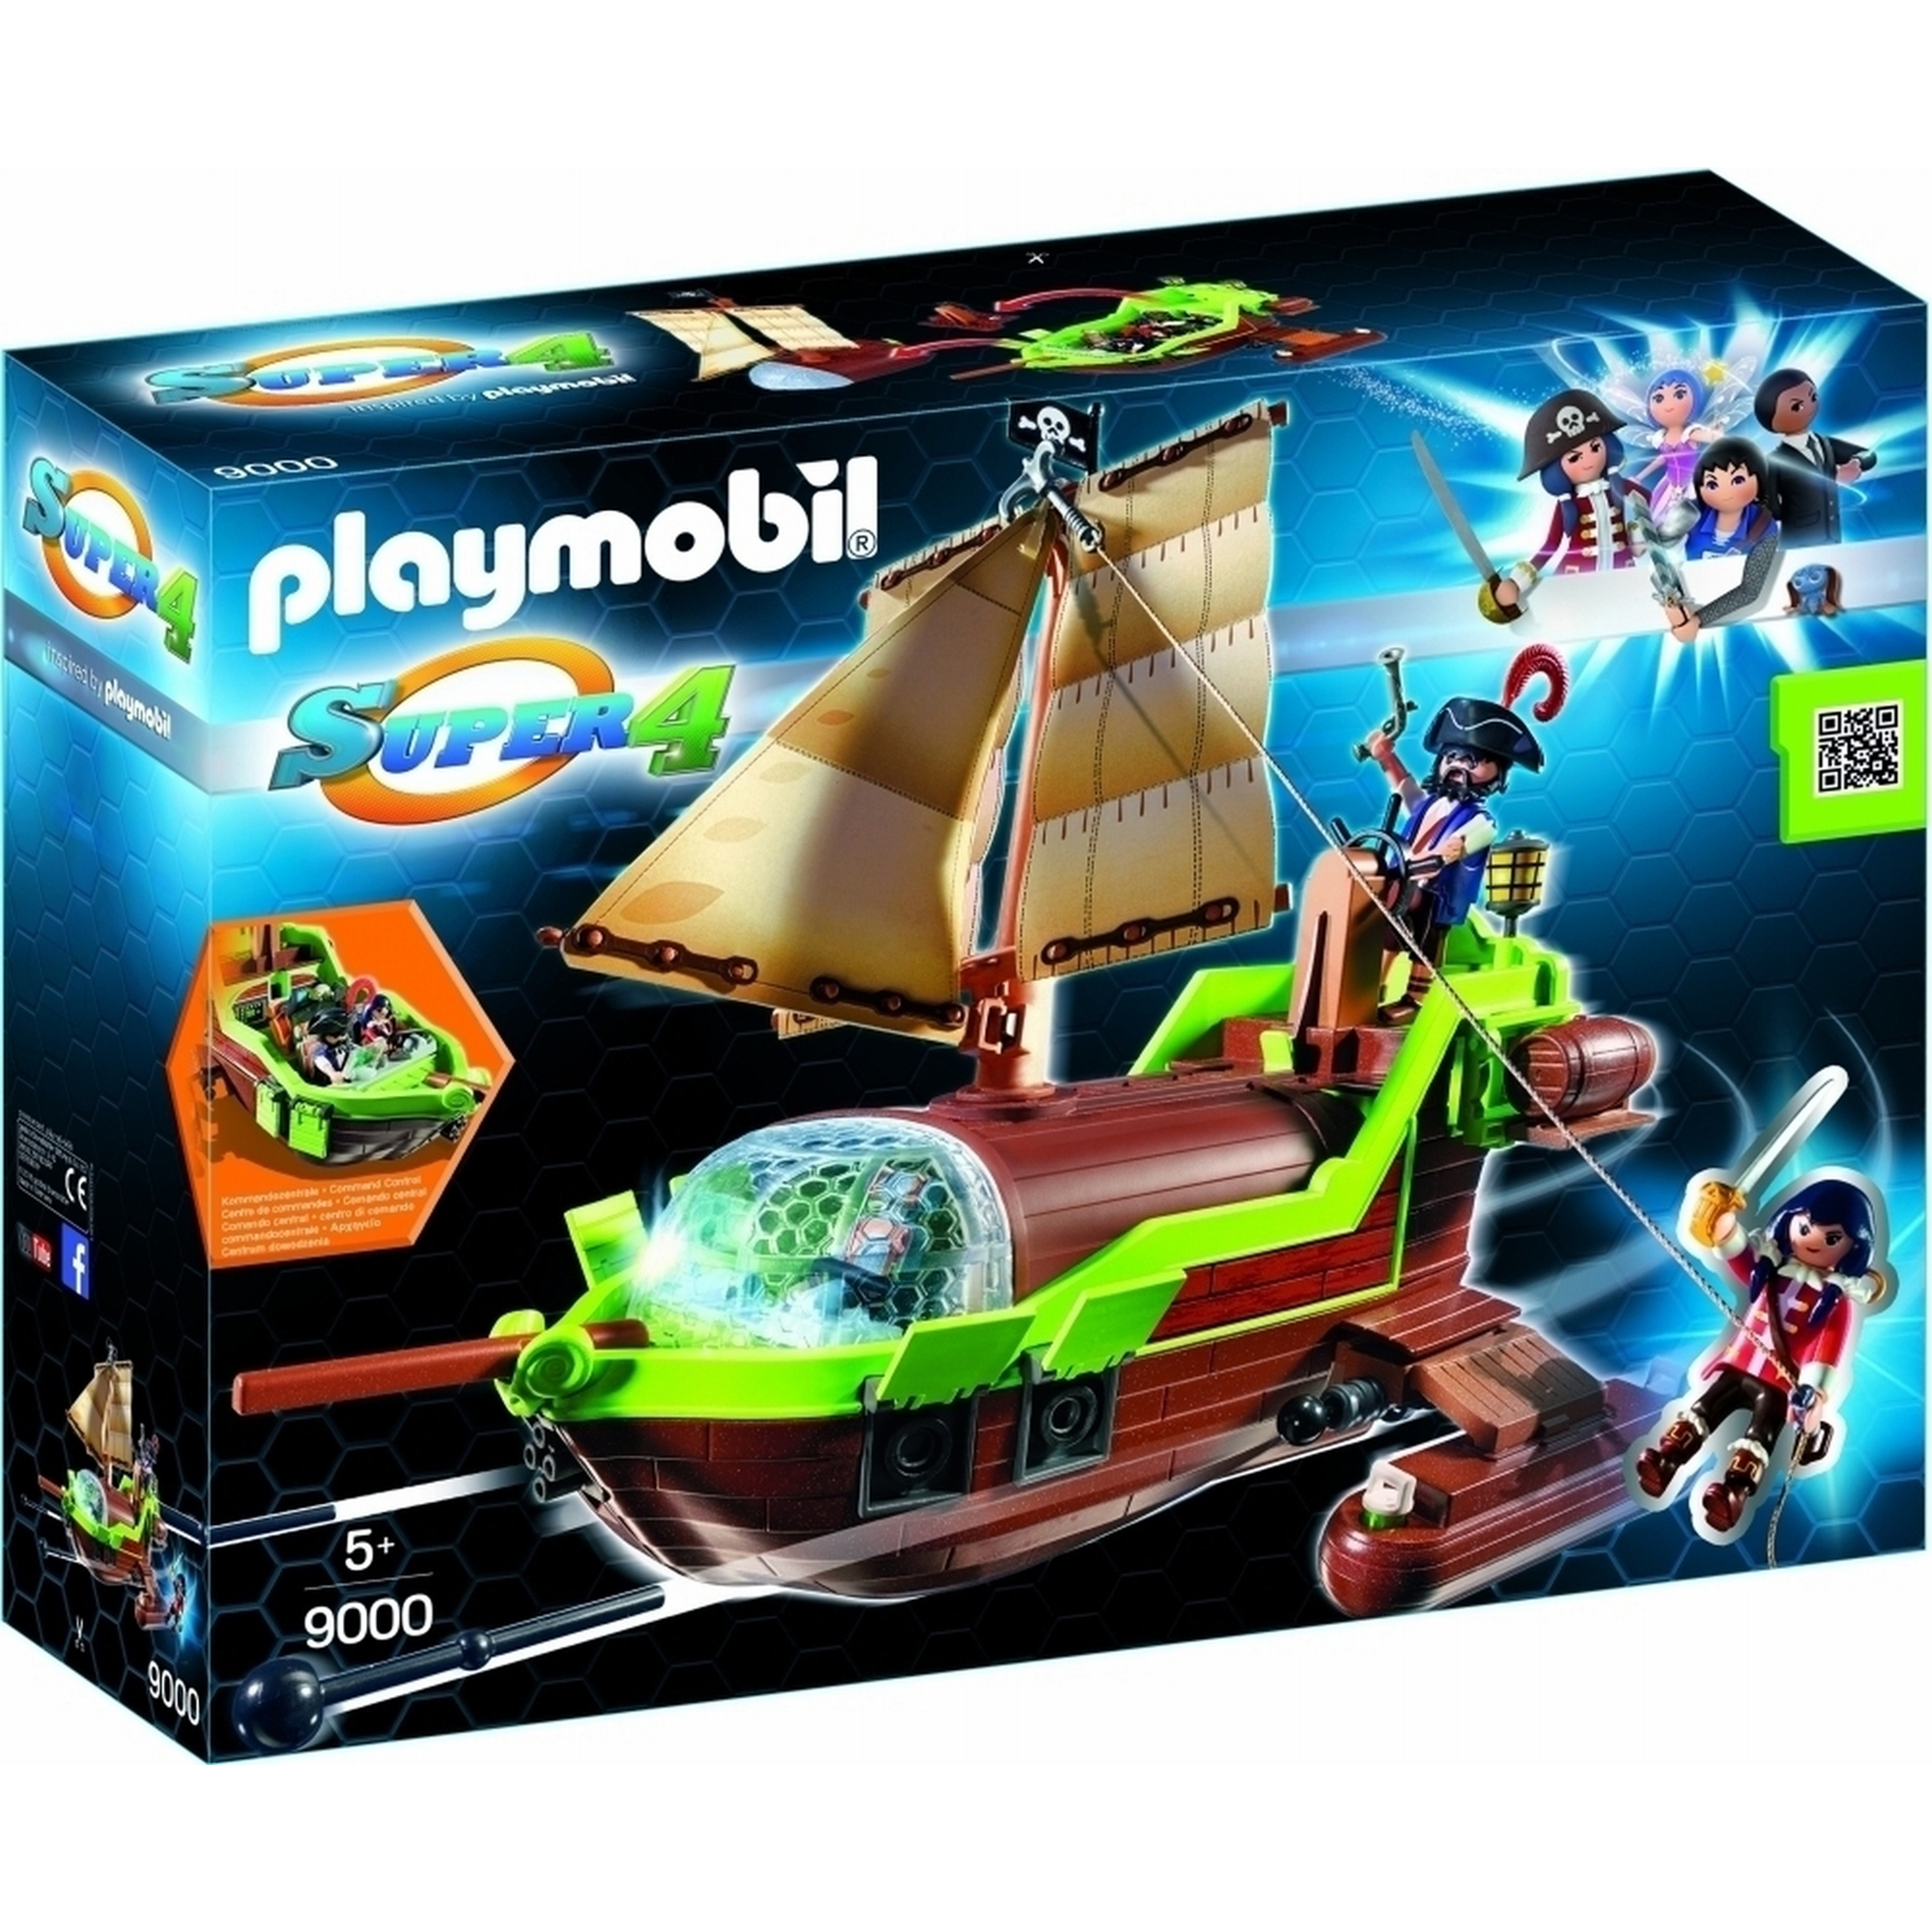 Playmobil Super 4 Floating Pirate Chameleon 9000